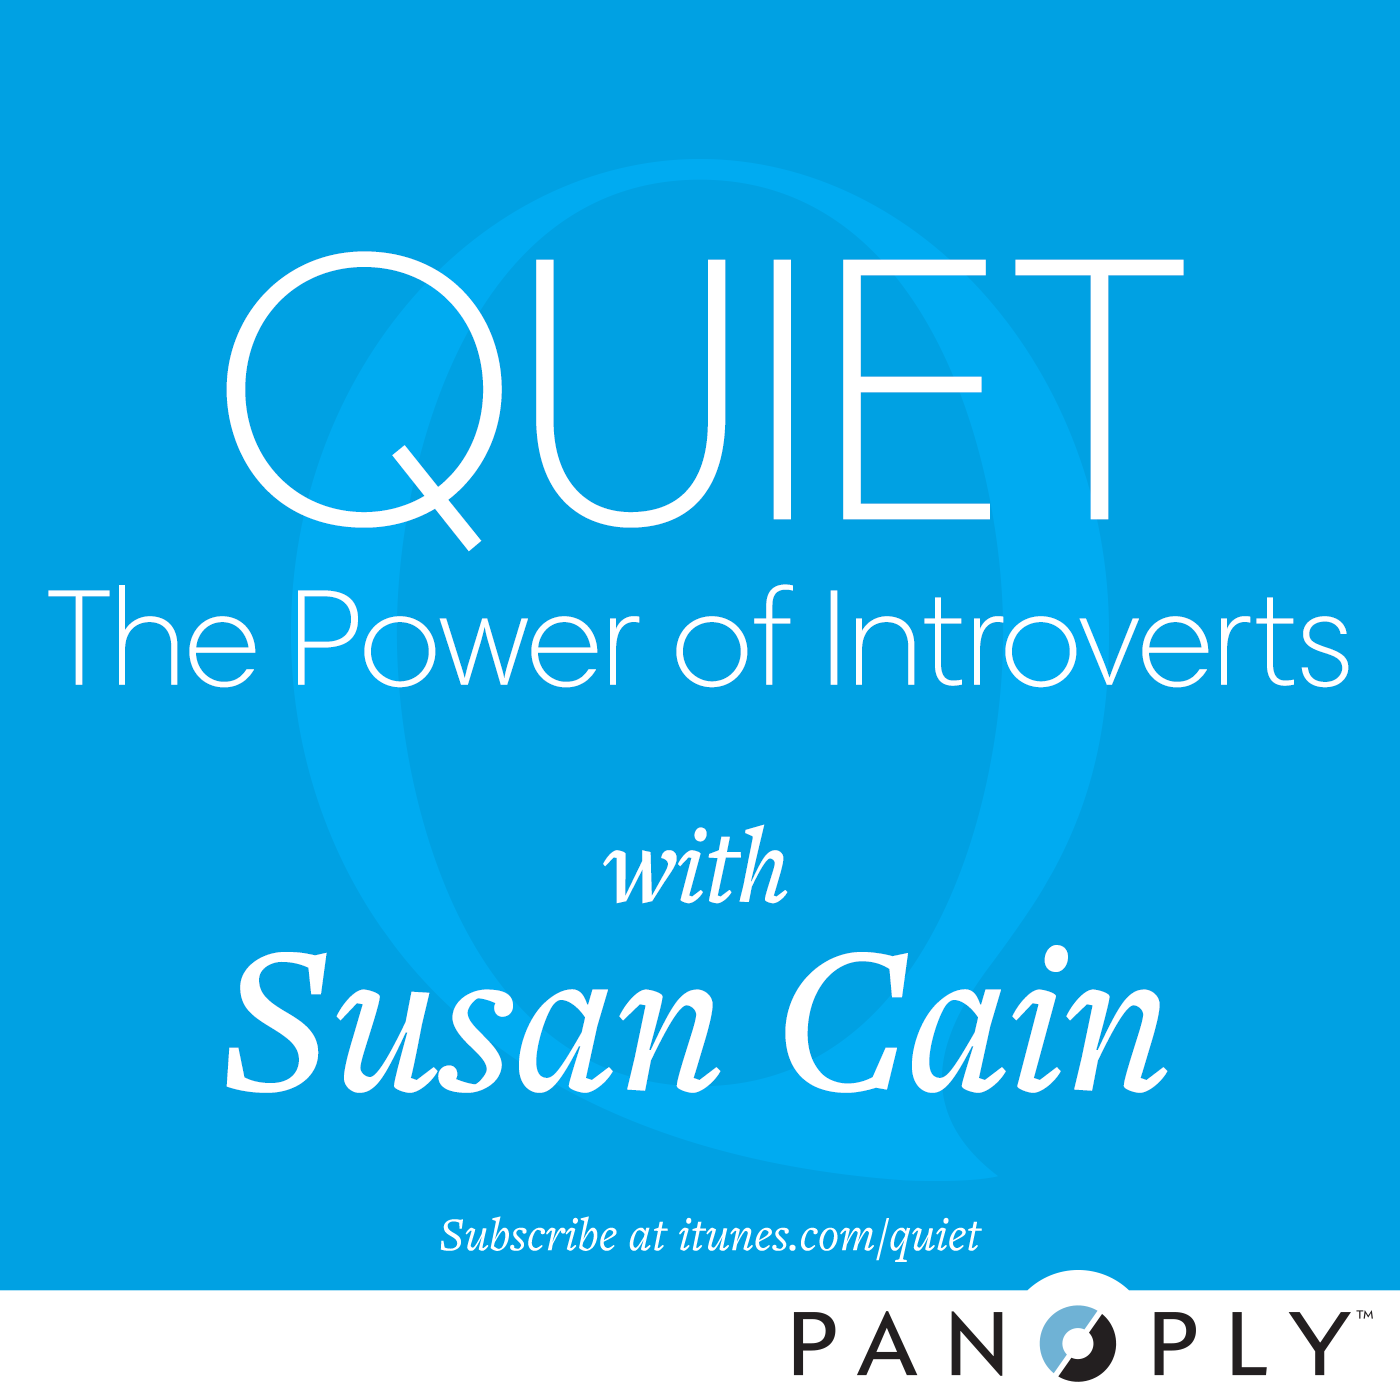 introvert essay what introverts bring to the dating game introvert  what introverts bring to the dating game introvert problems quiet the power of introverts susan cain meiosis essay doorway